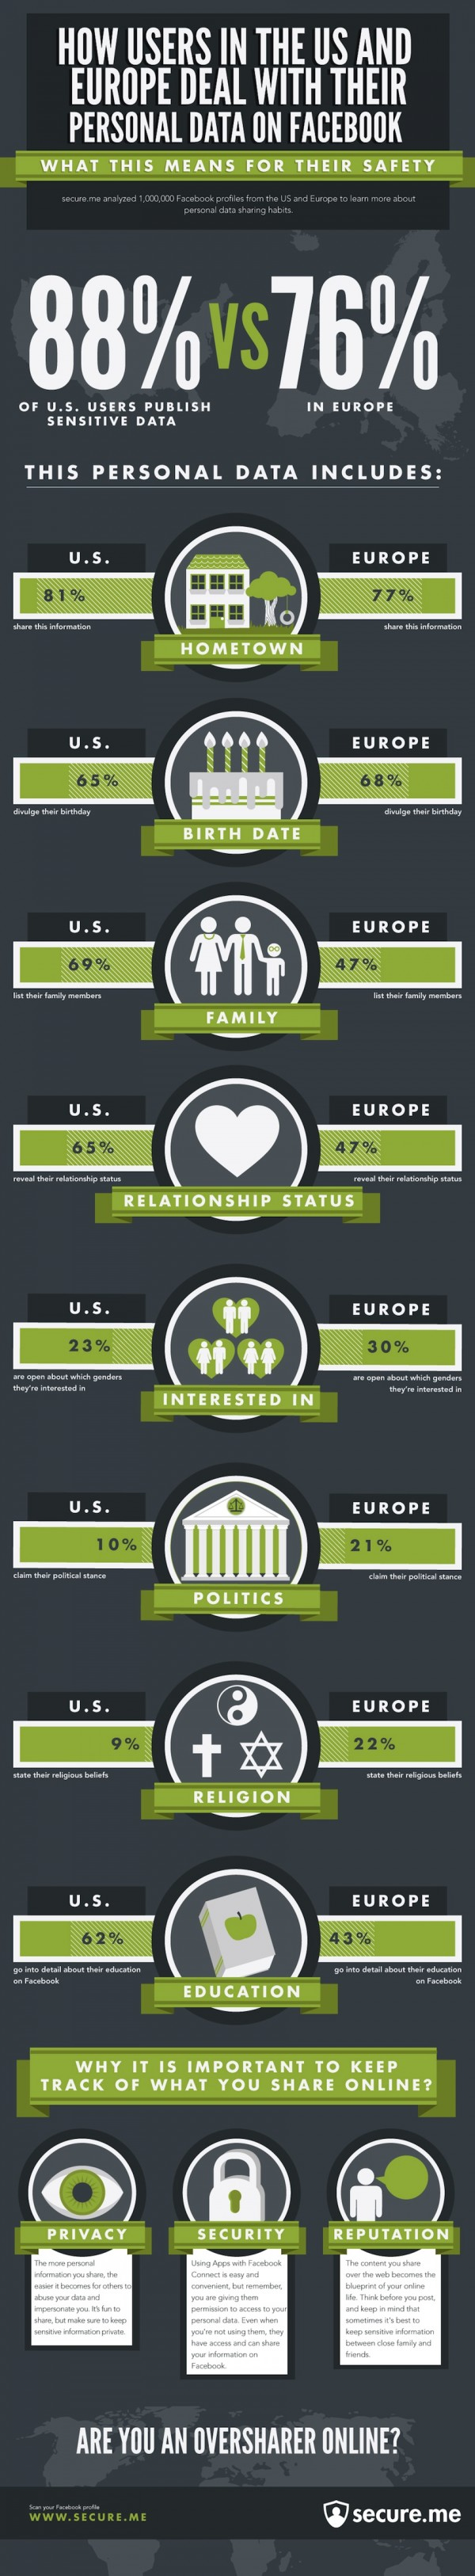 How US and Europe Facebook User Deal with Their Personal Data